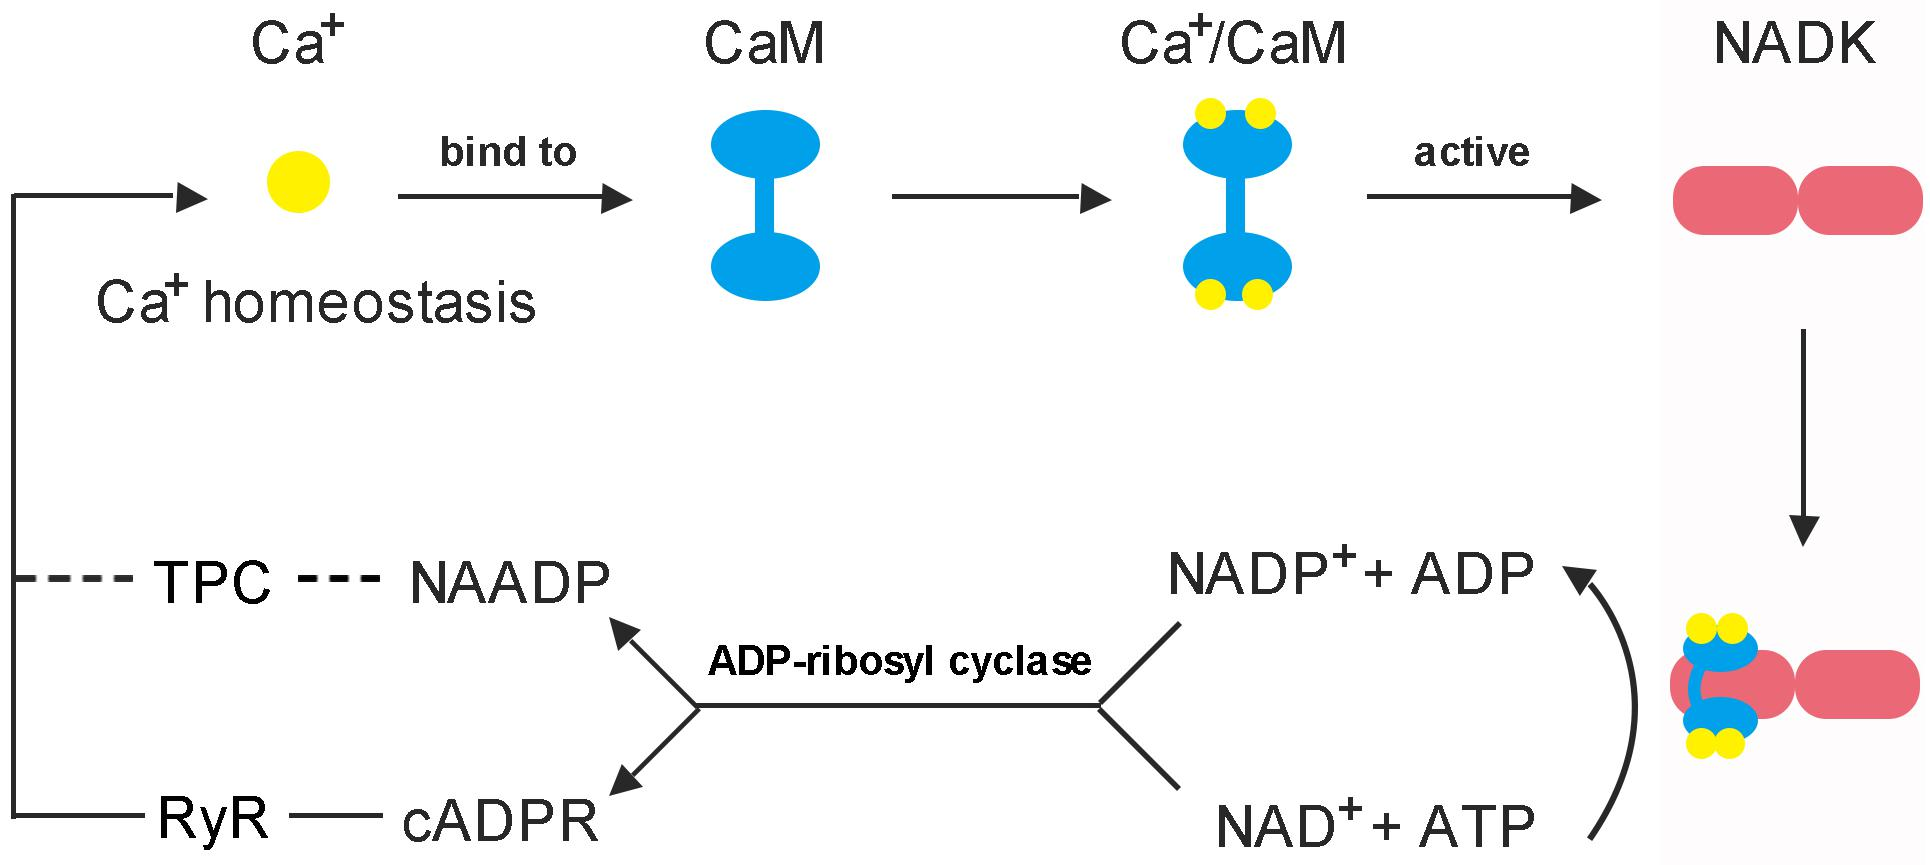 Frontiers | Calmodulin Is the Fundamental Regulator of NADK-Mediated